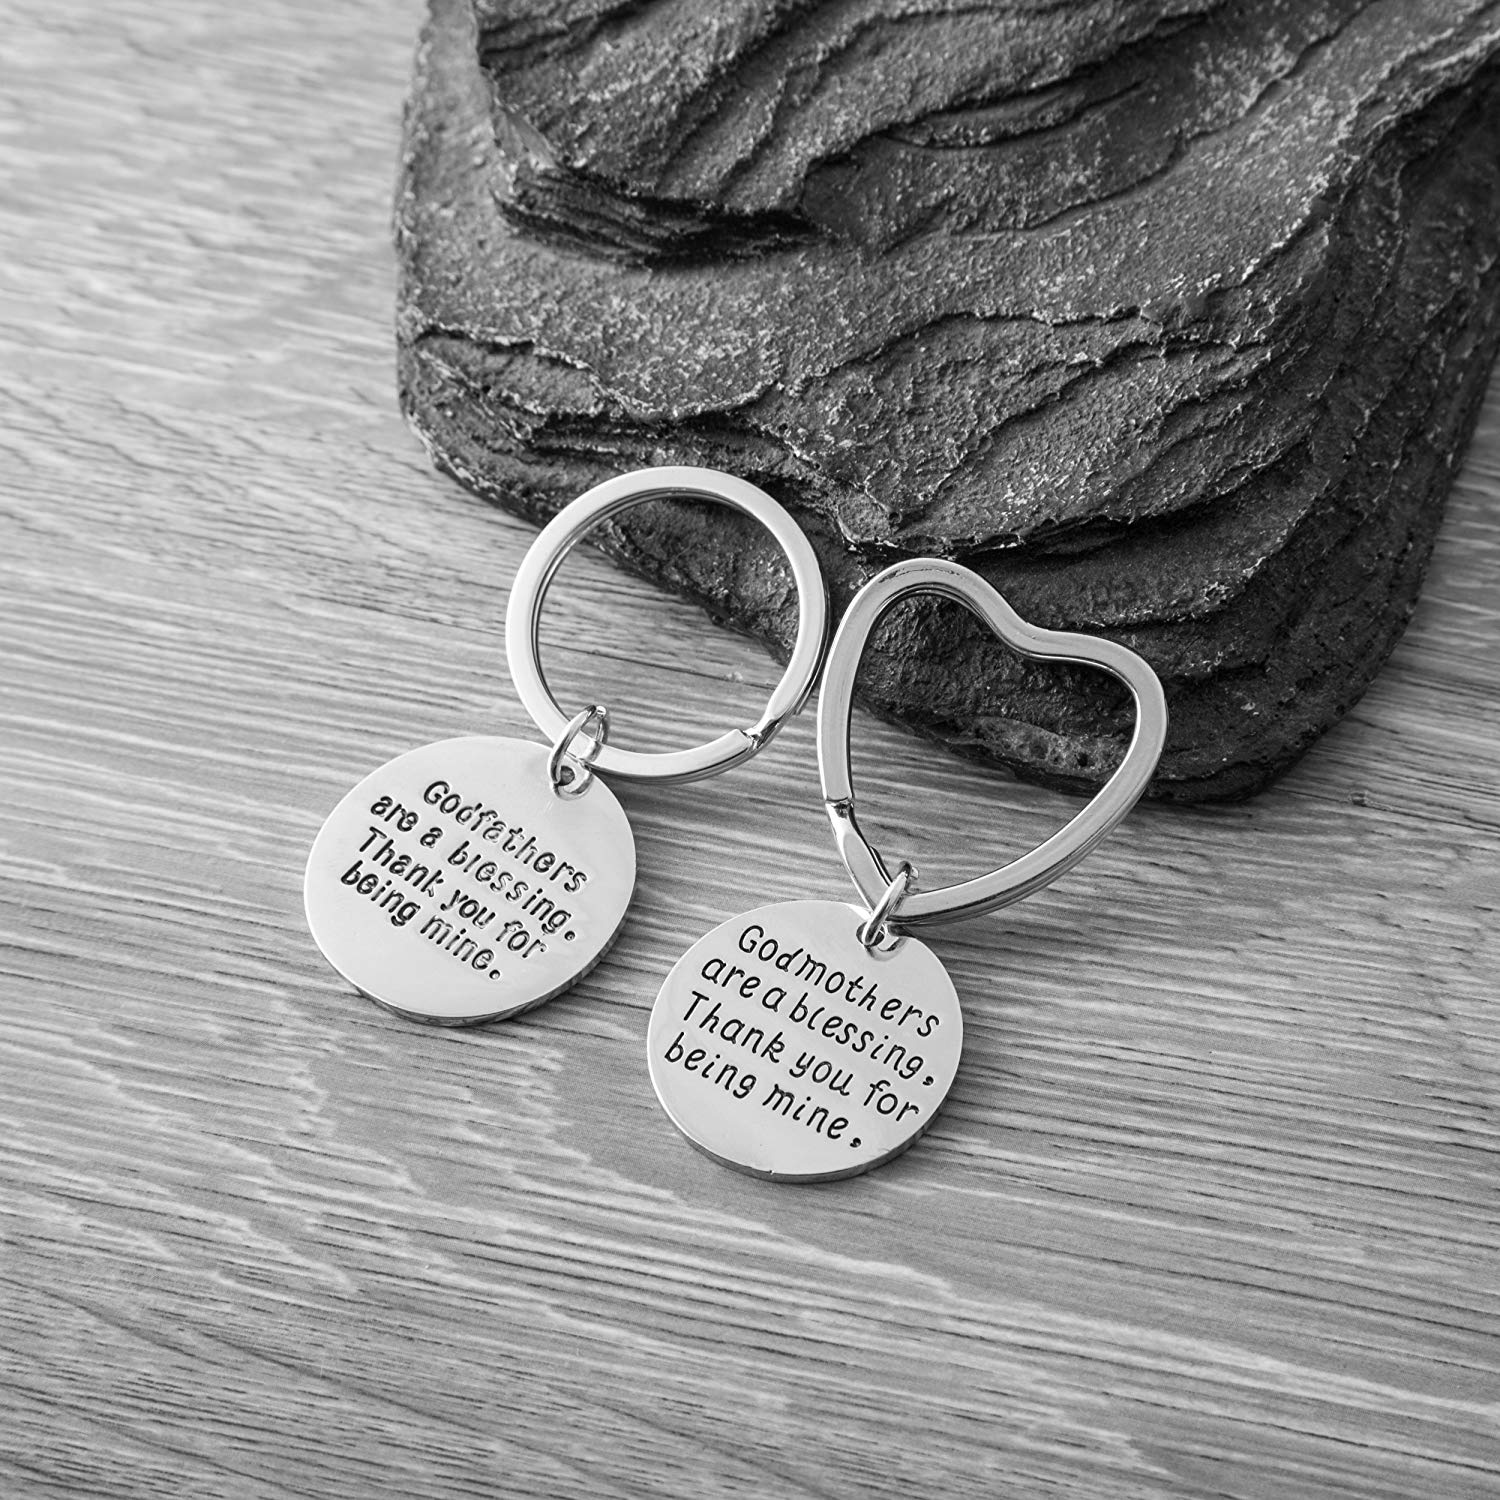 Godparent Gifts Godmother Godfather Gifts Set Godmother Godfather Keychains Perfect Gift For Godparents